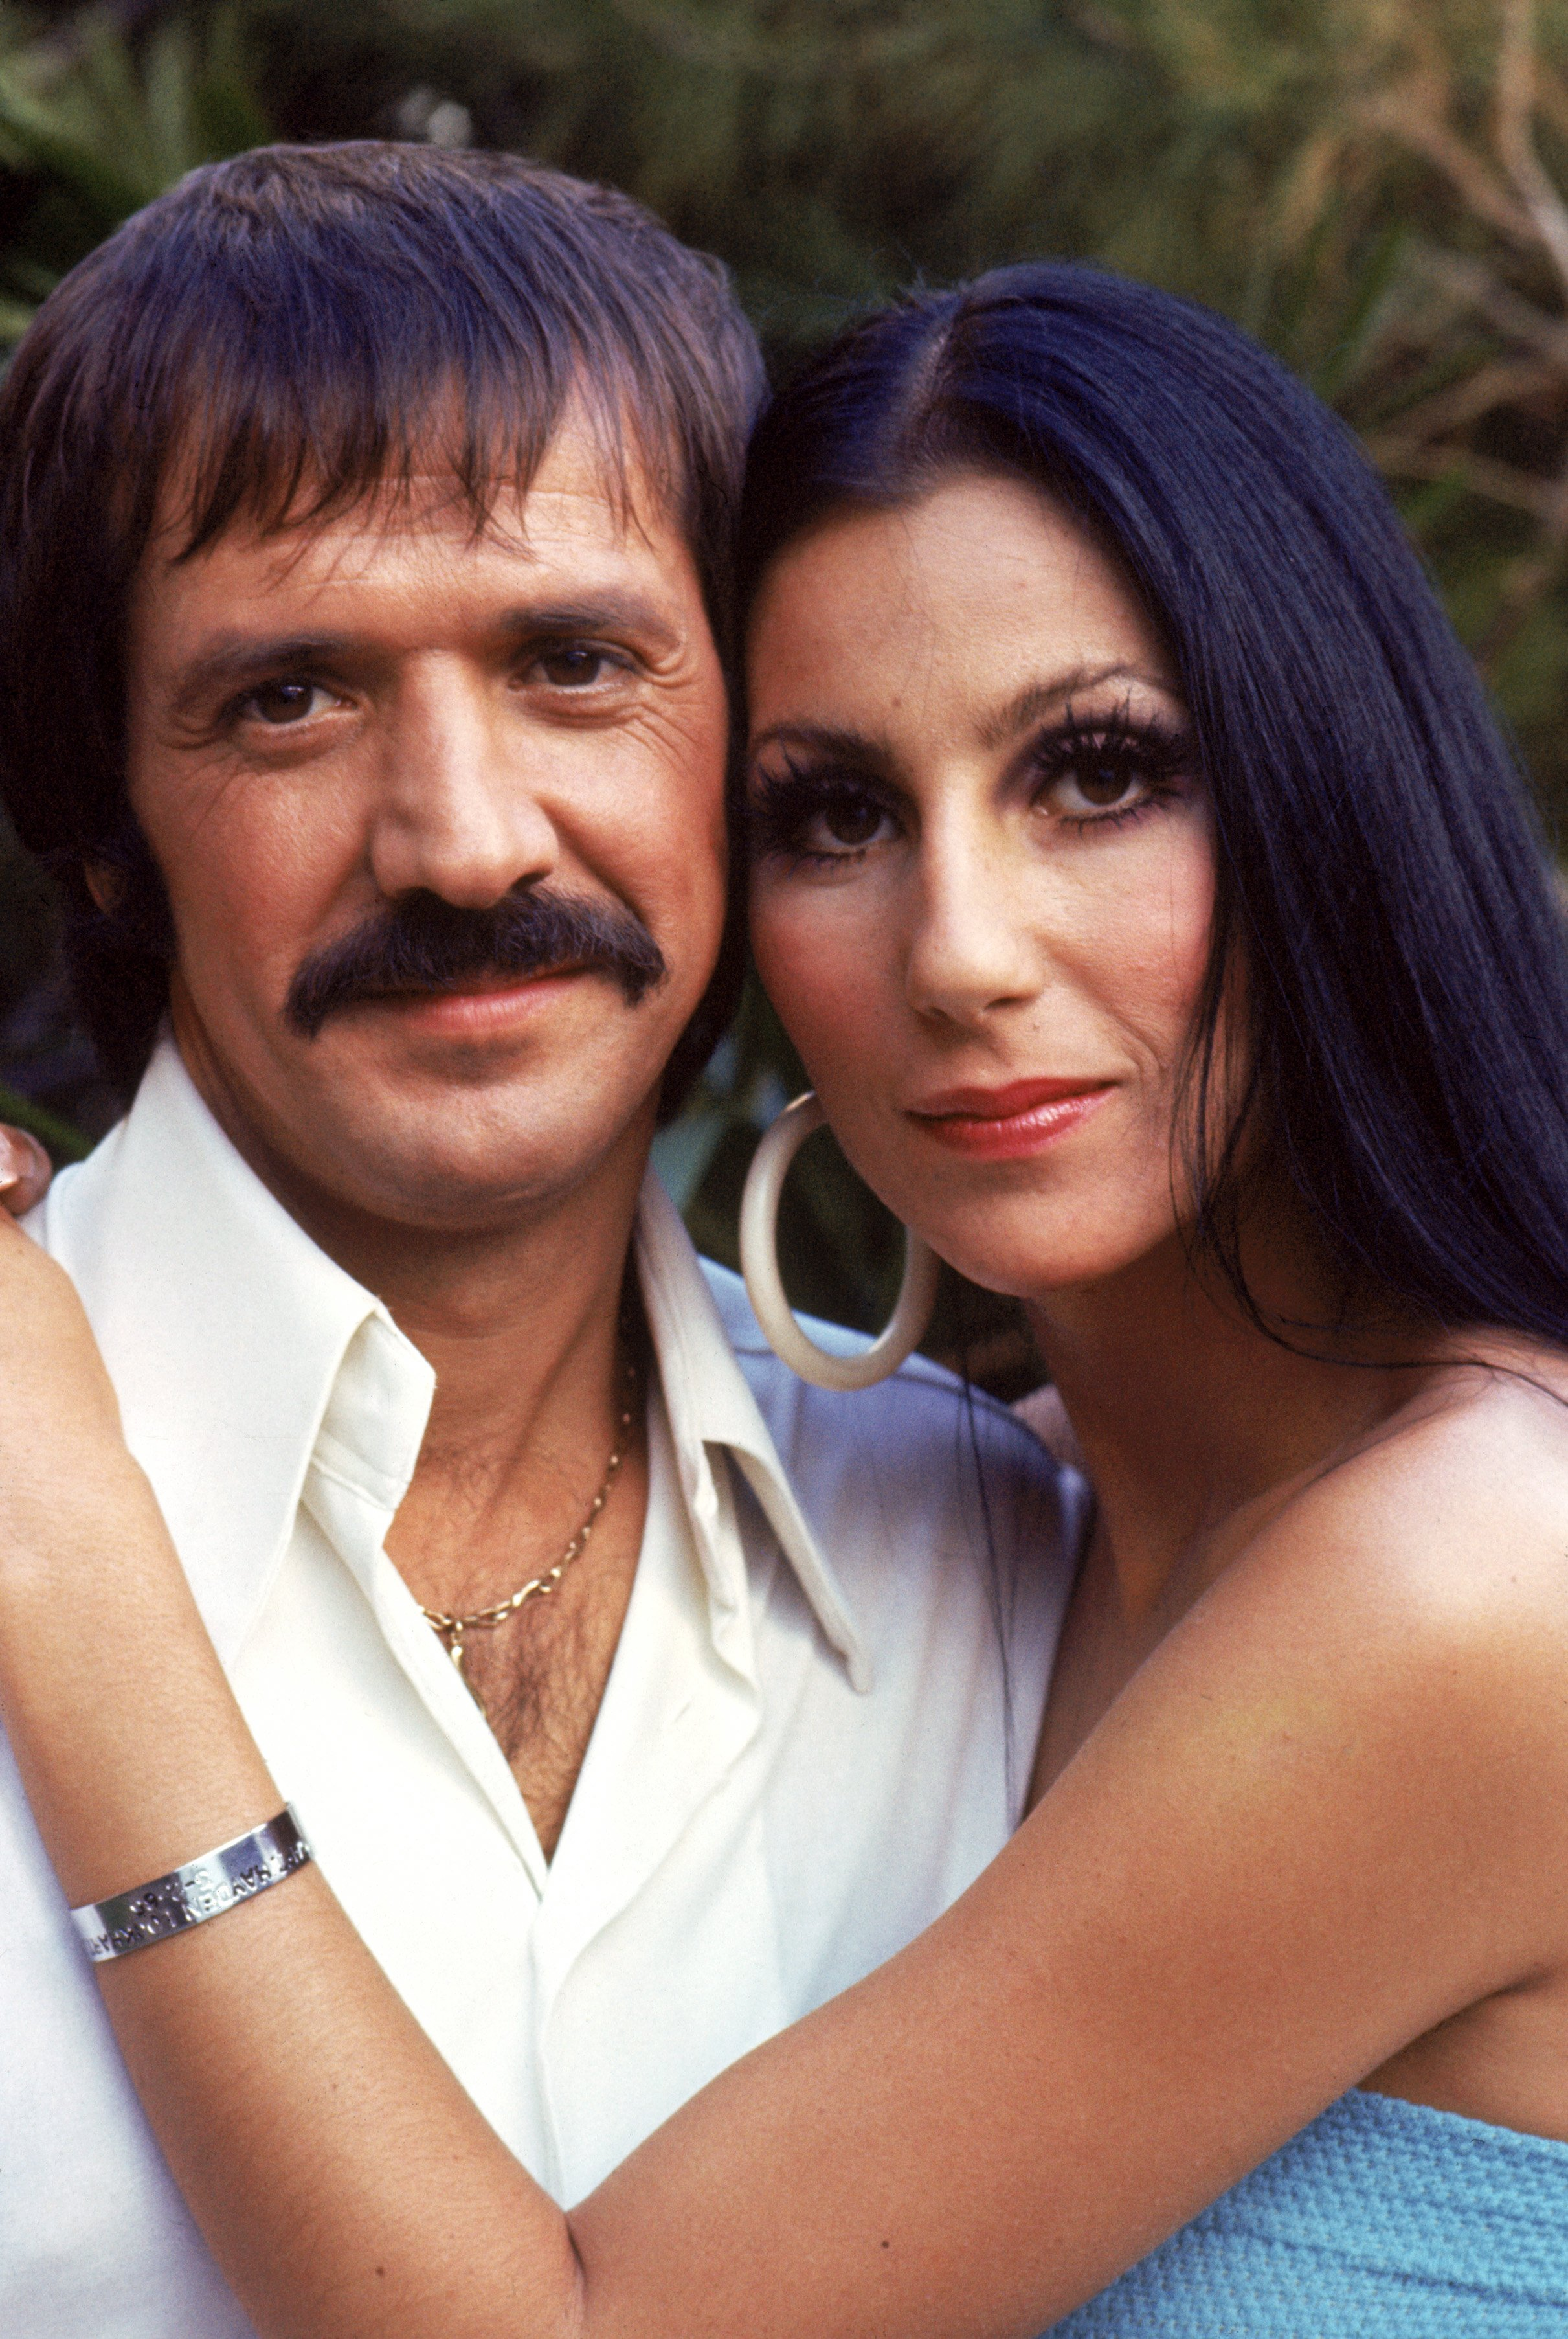 Image Source: Getty Images/ Cher and Bono